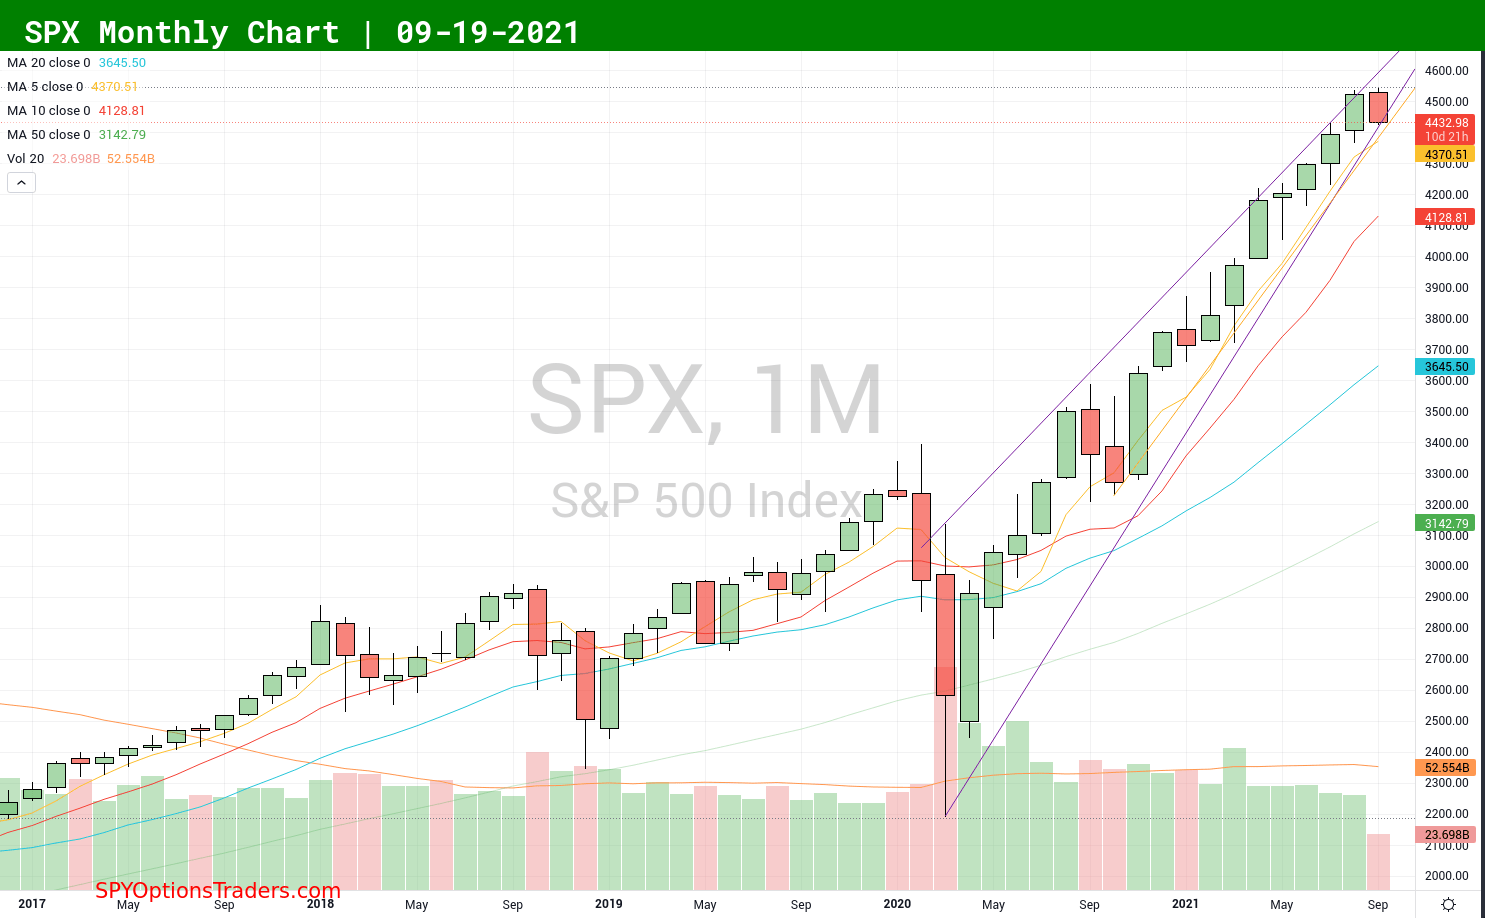 SPX S&P 500 index monthly chart